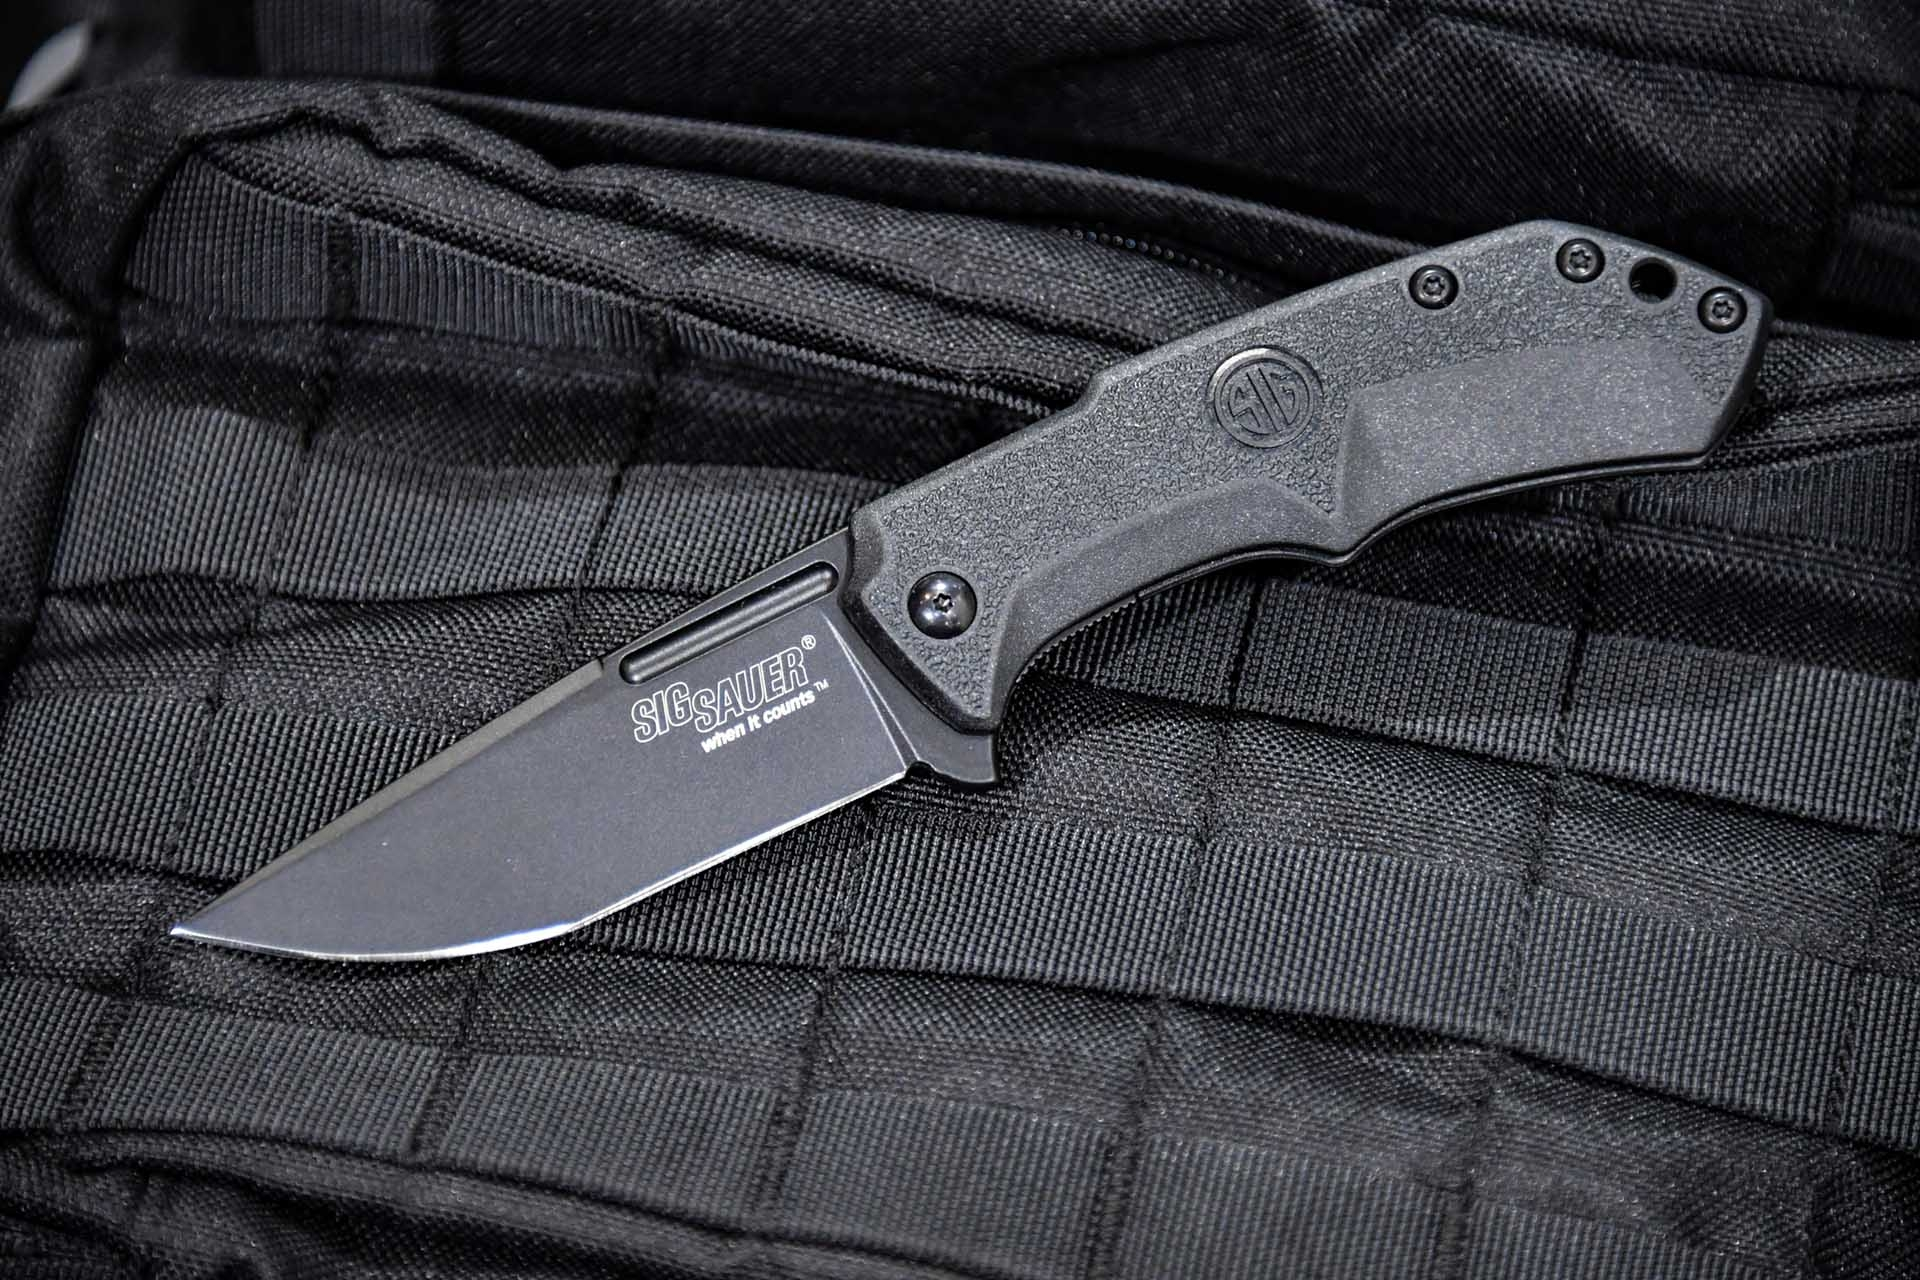 The folding knife SIG Sauer M1 with black handle